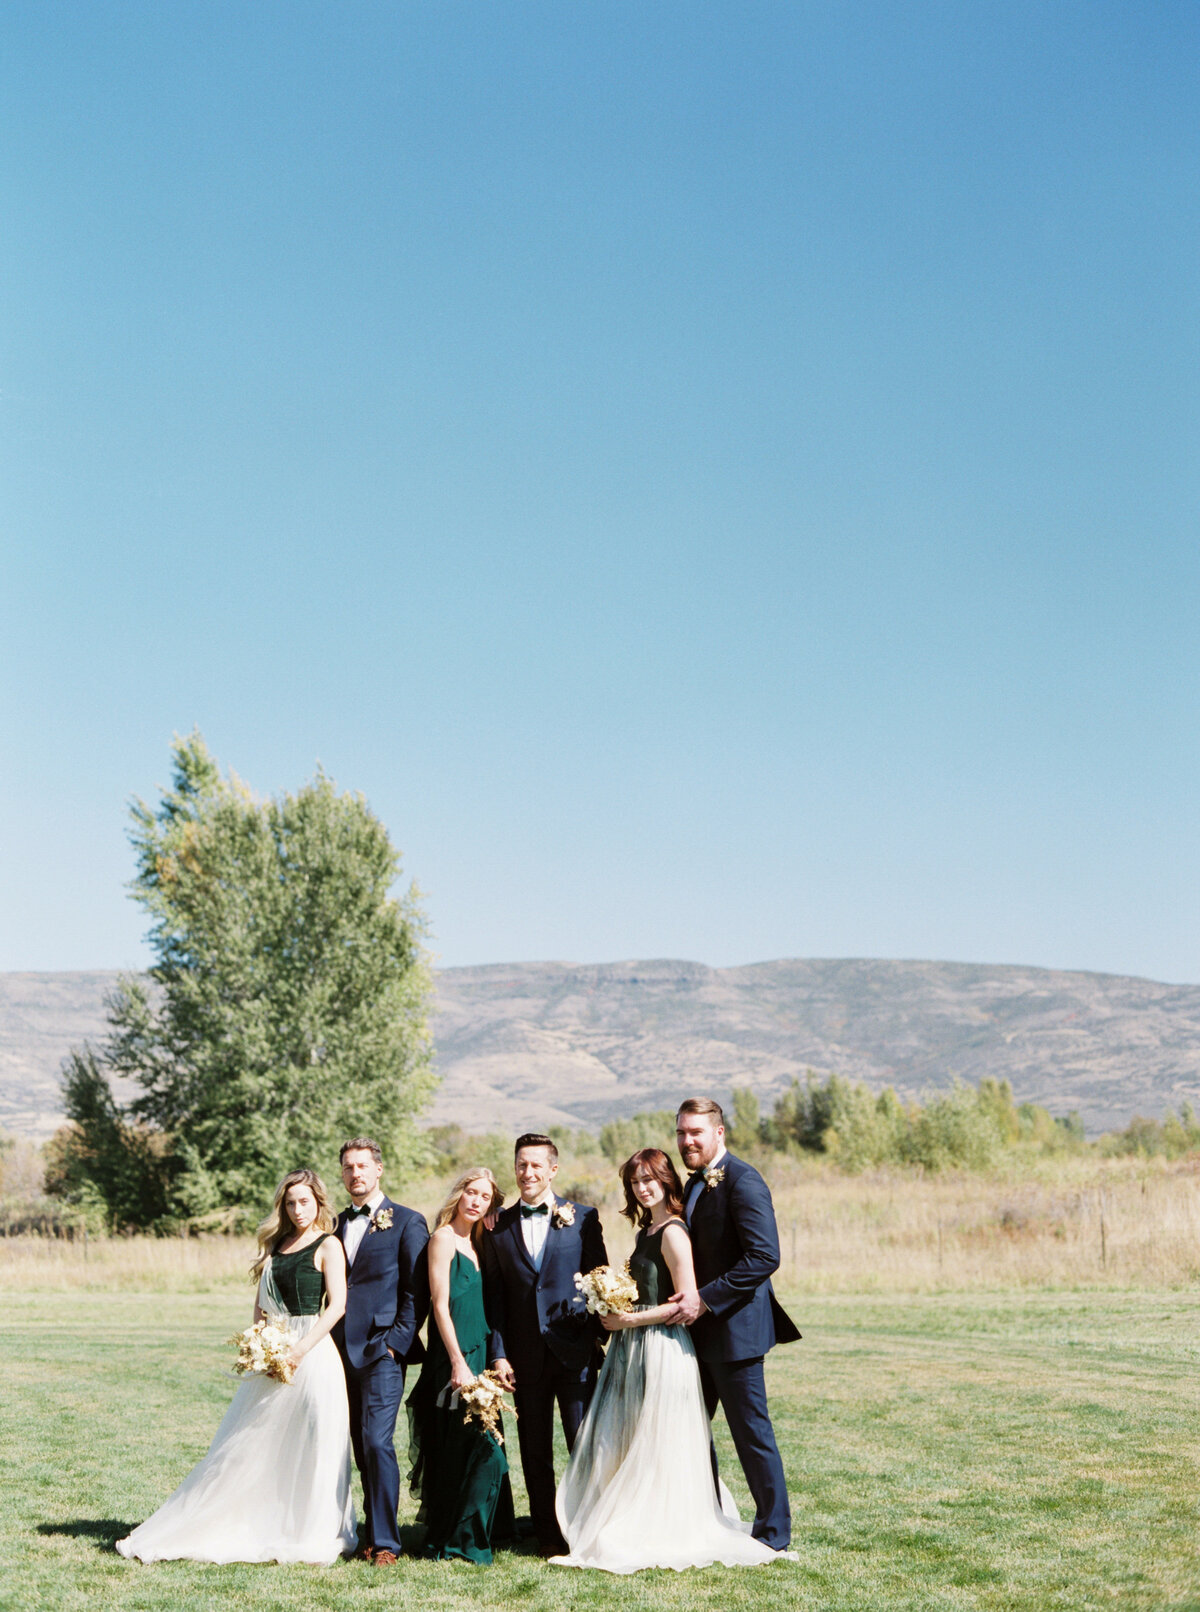 MarcelaPloskerPhotography|RiverBottomsRanch-238